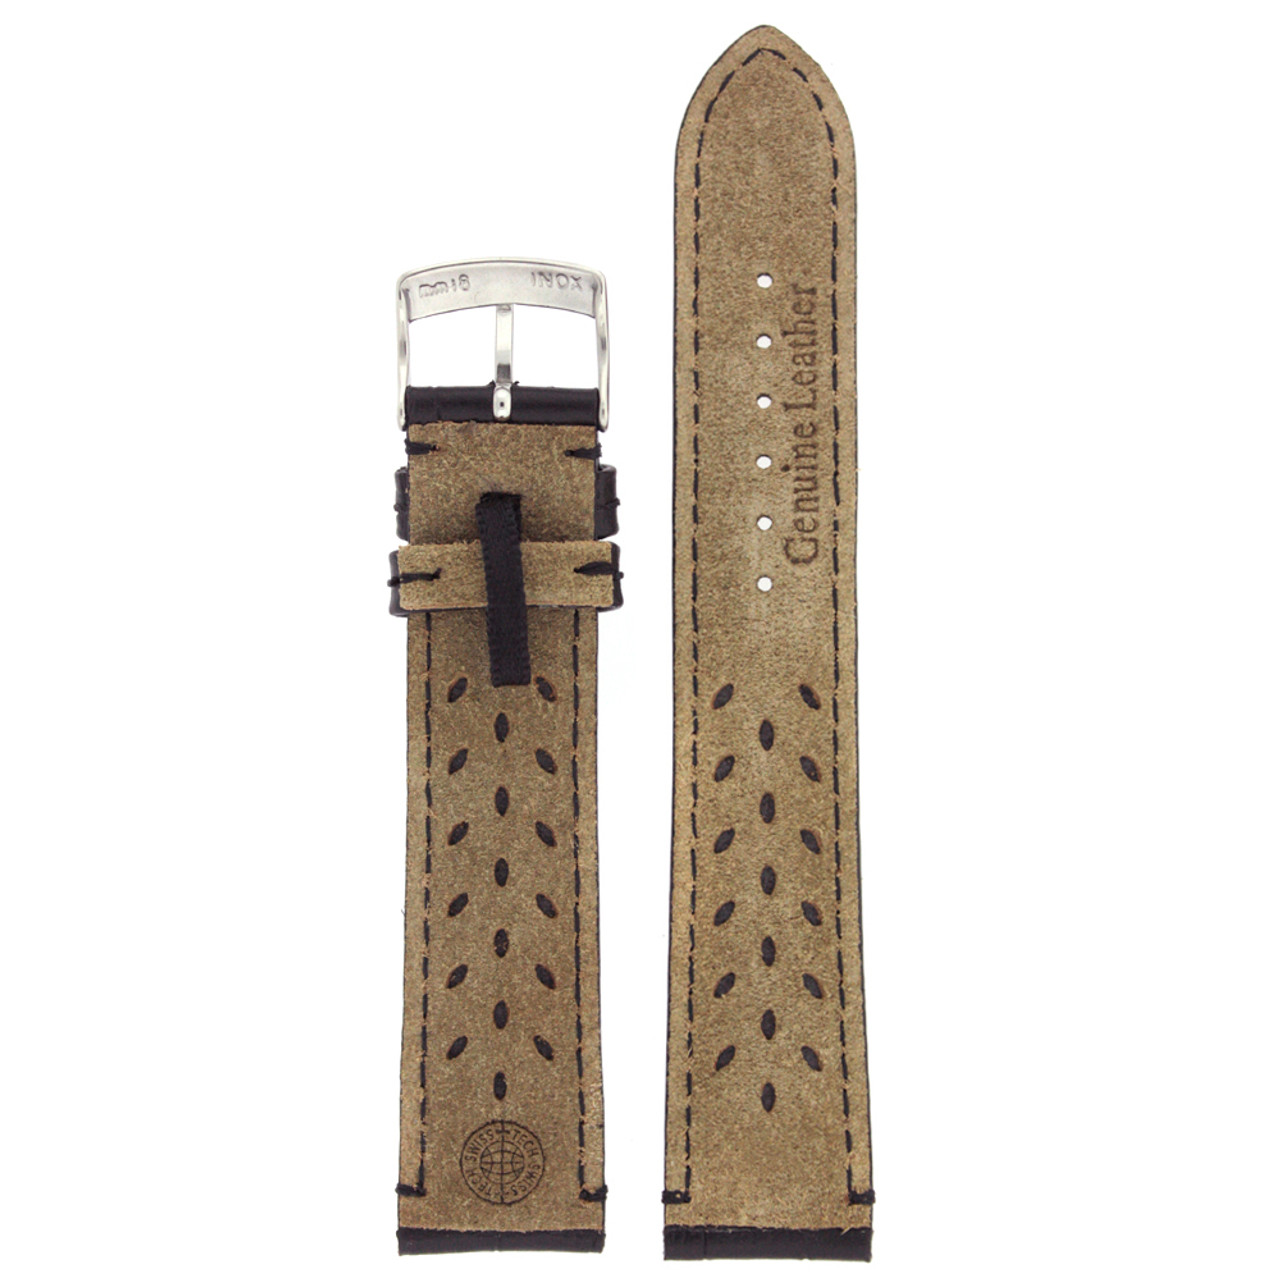 Black Alligator Grain Watch Band by Tech Swiss - Interior View